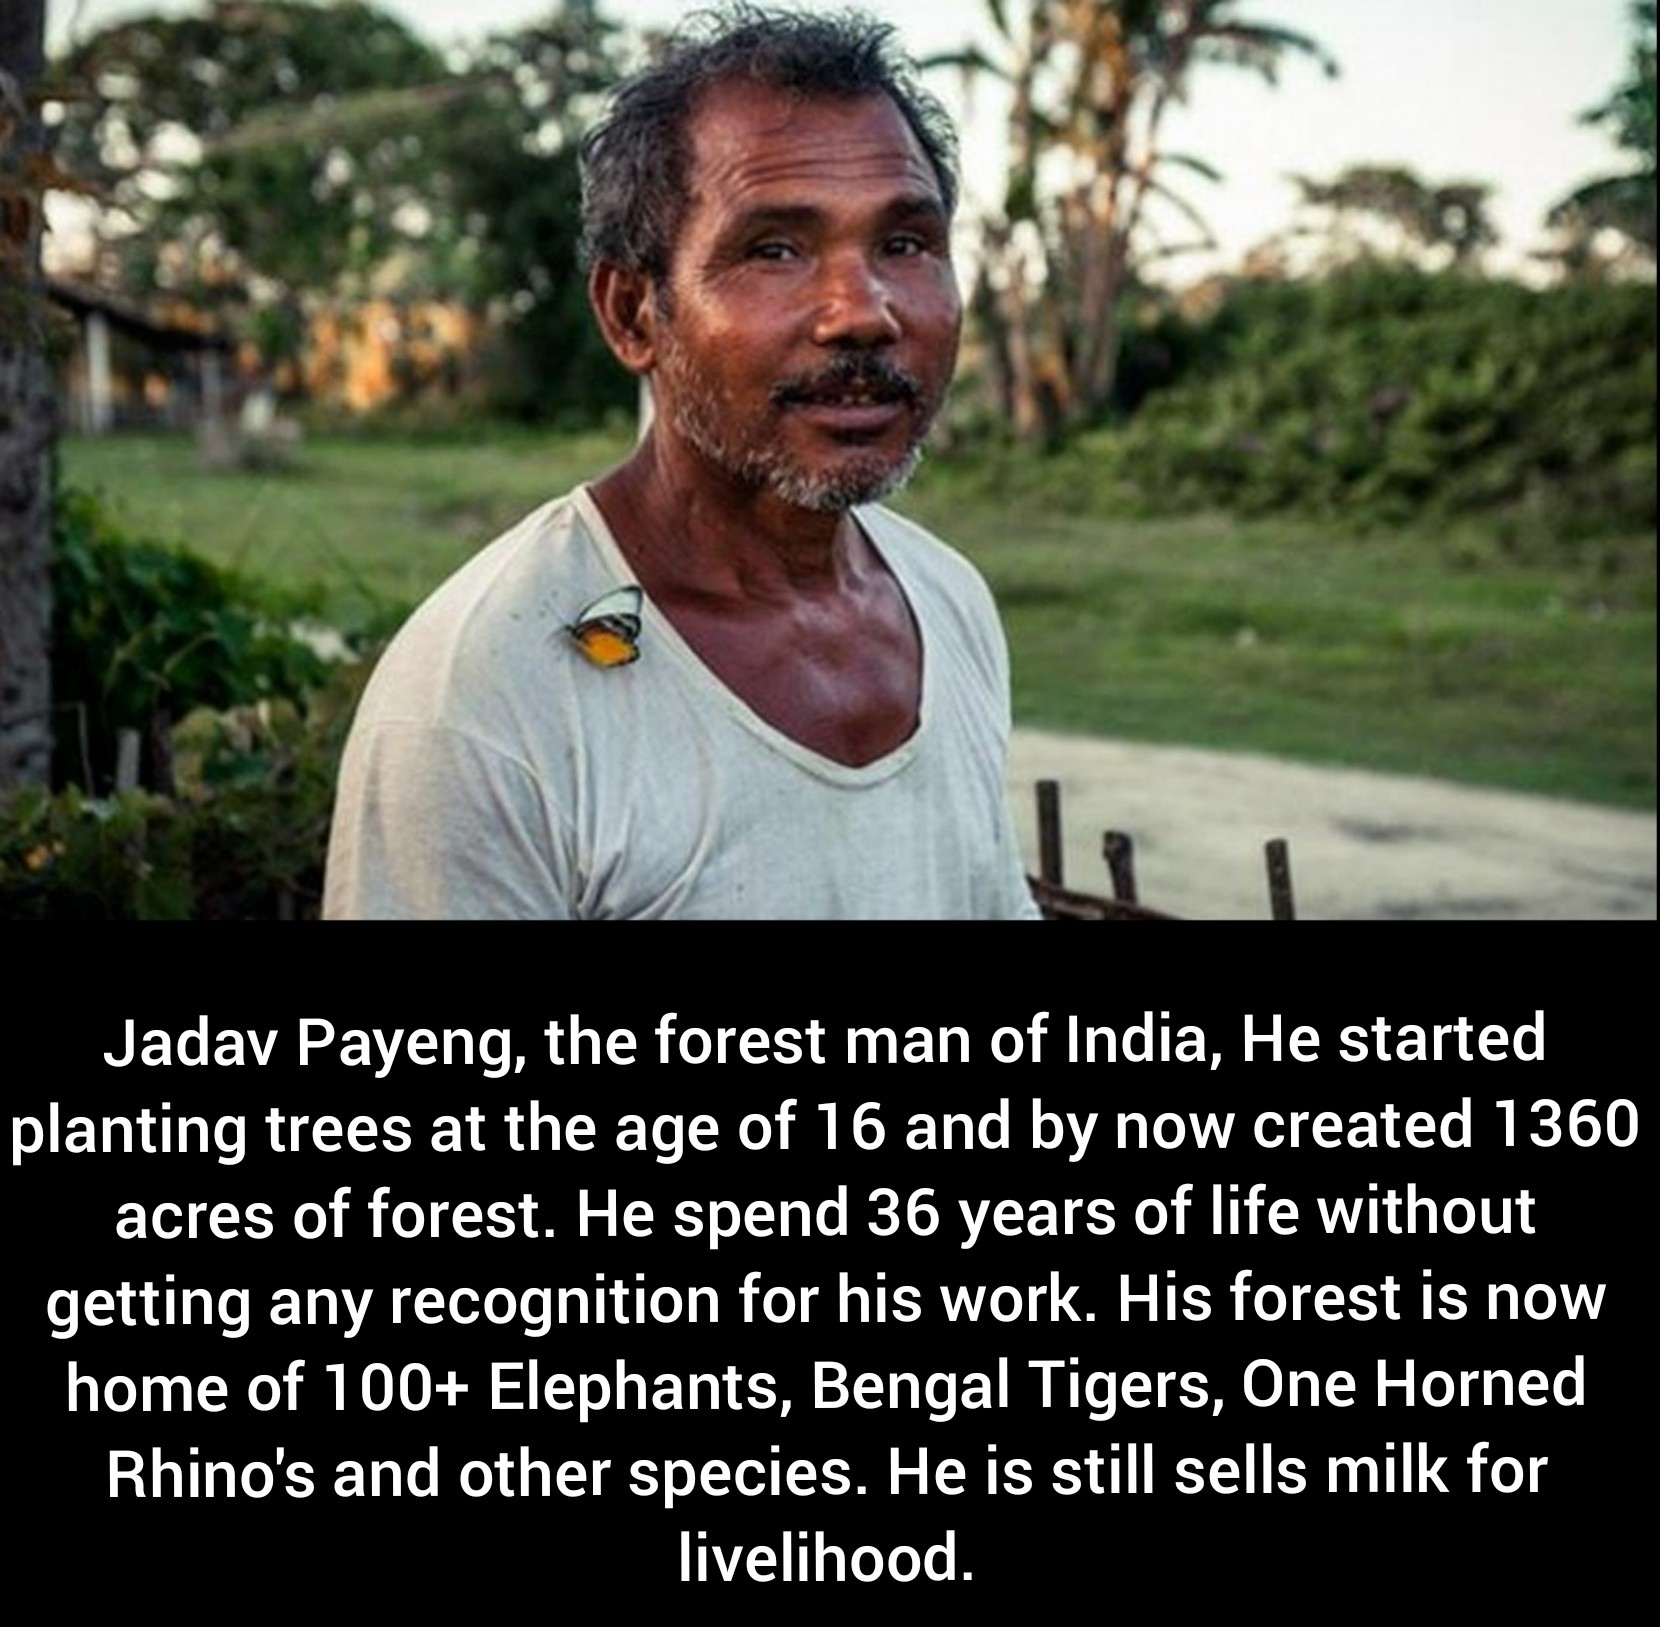 [Image] Anything is possible, even planting a forest alone. A true unsung hero.